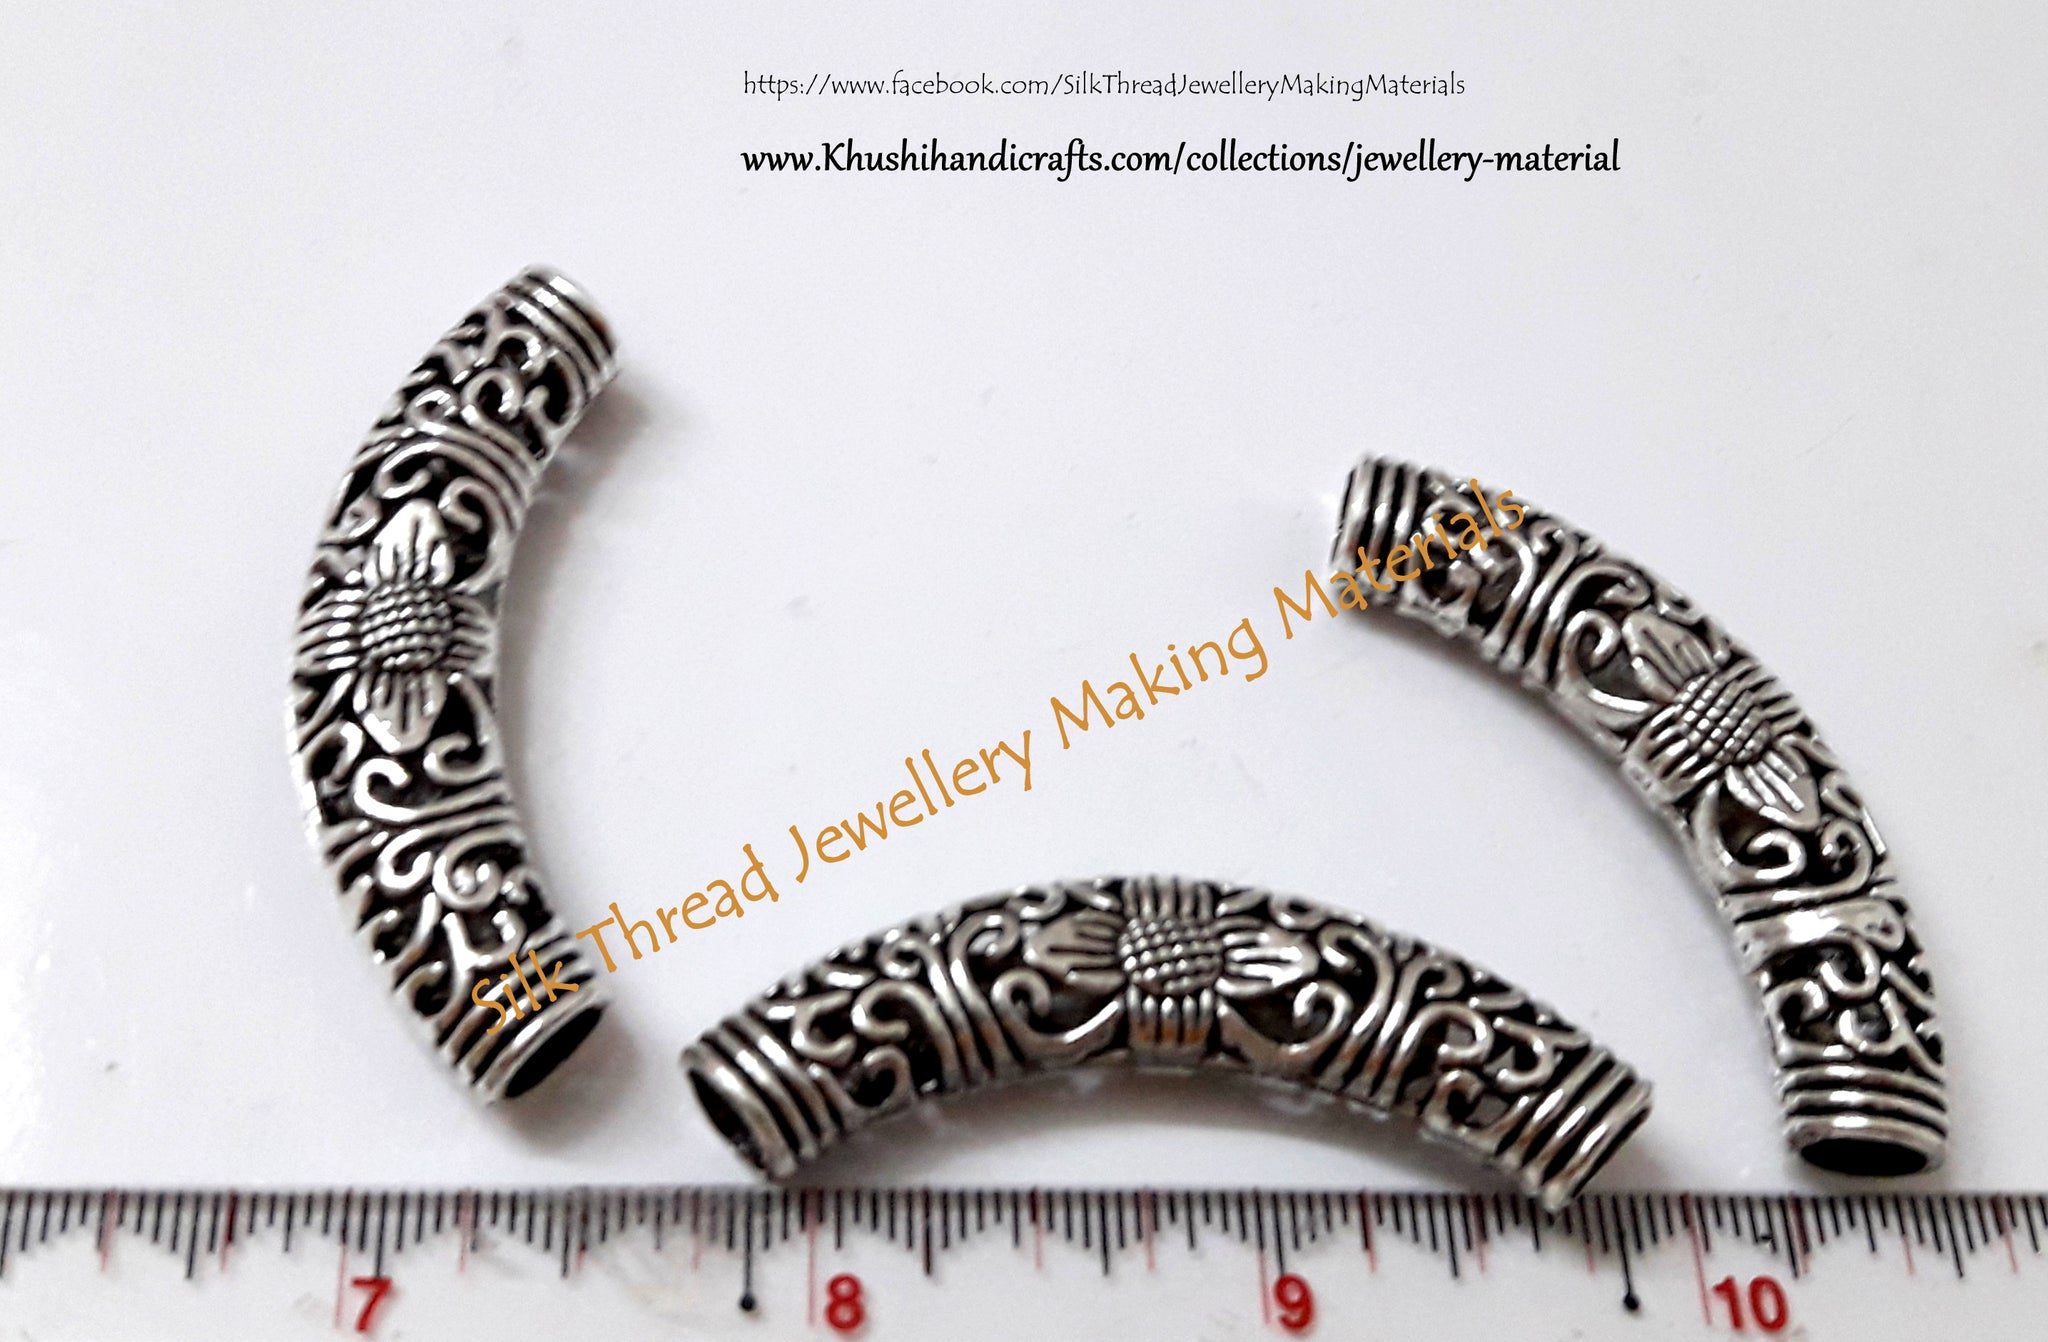 Antique Silver Tibetan Style Designer Hollow Bent Pipes/Tube-Jewelry Making materials